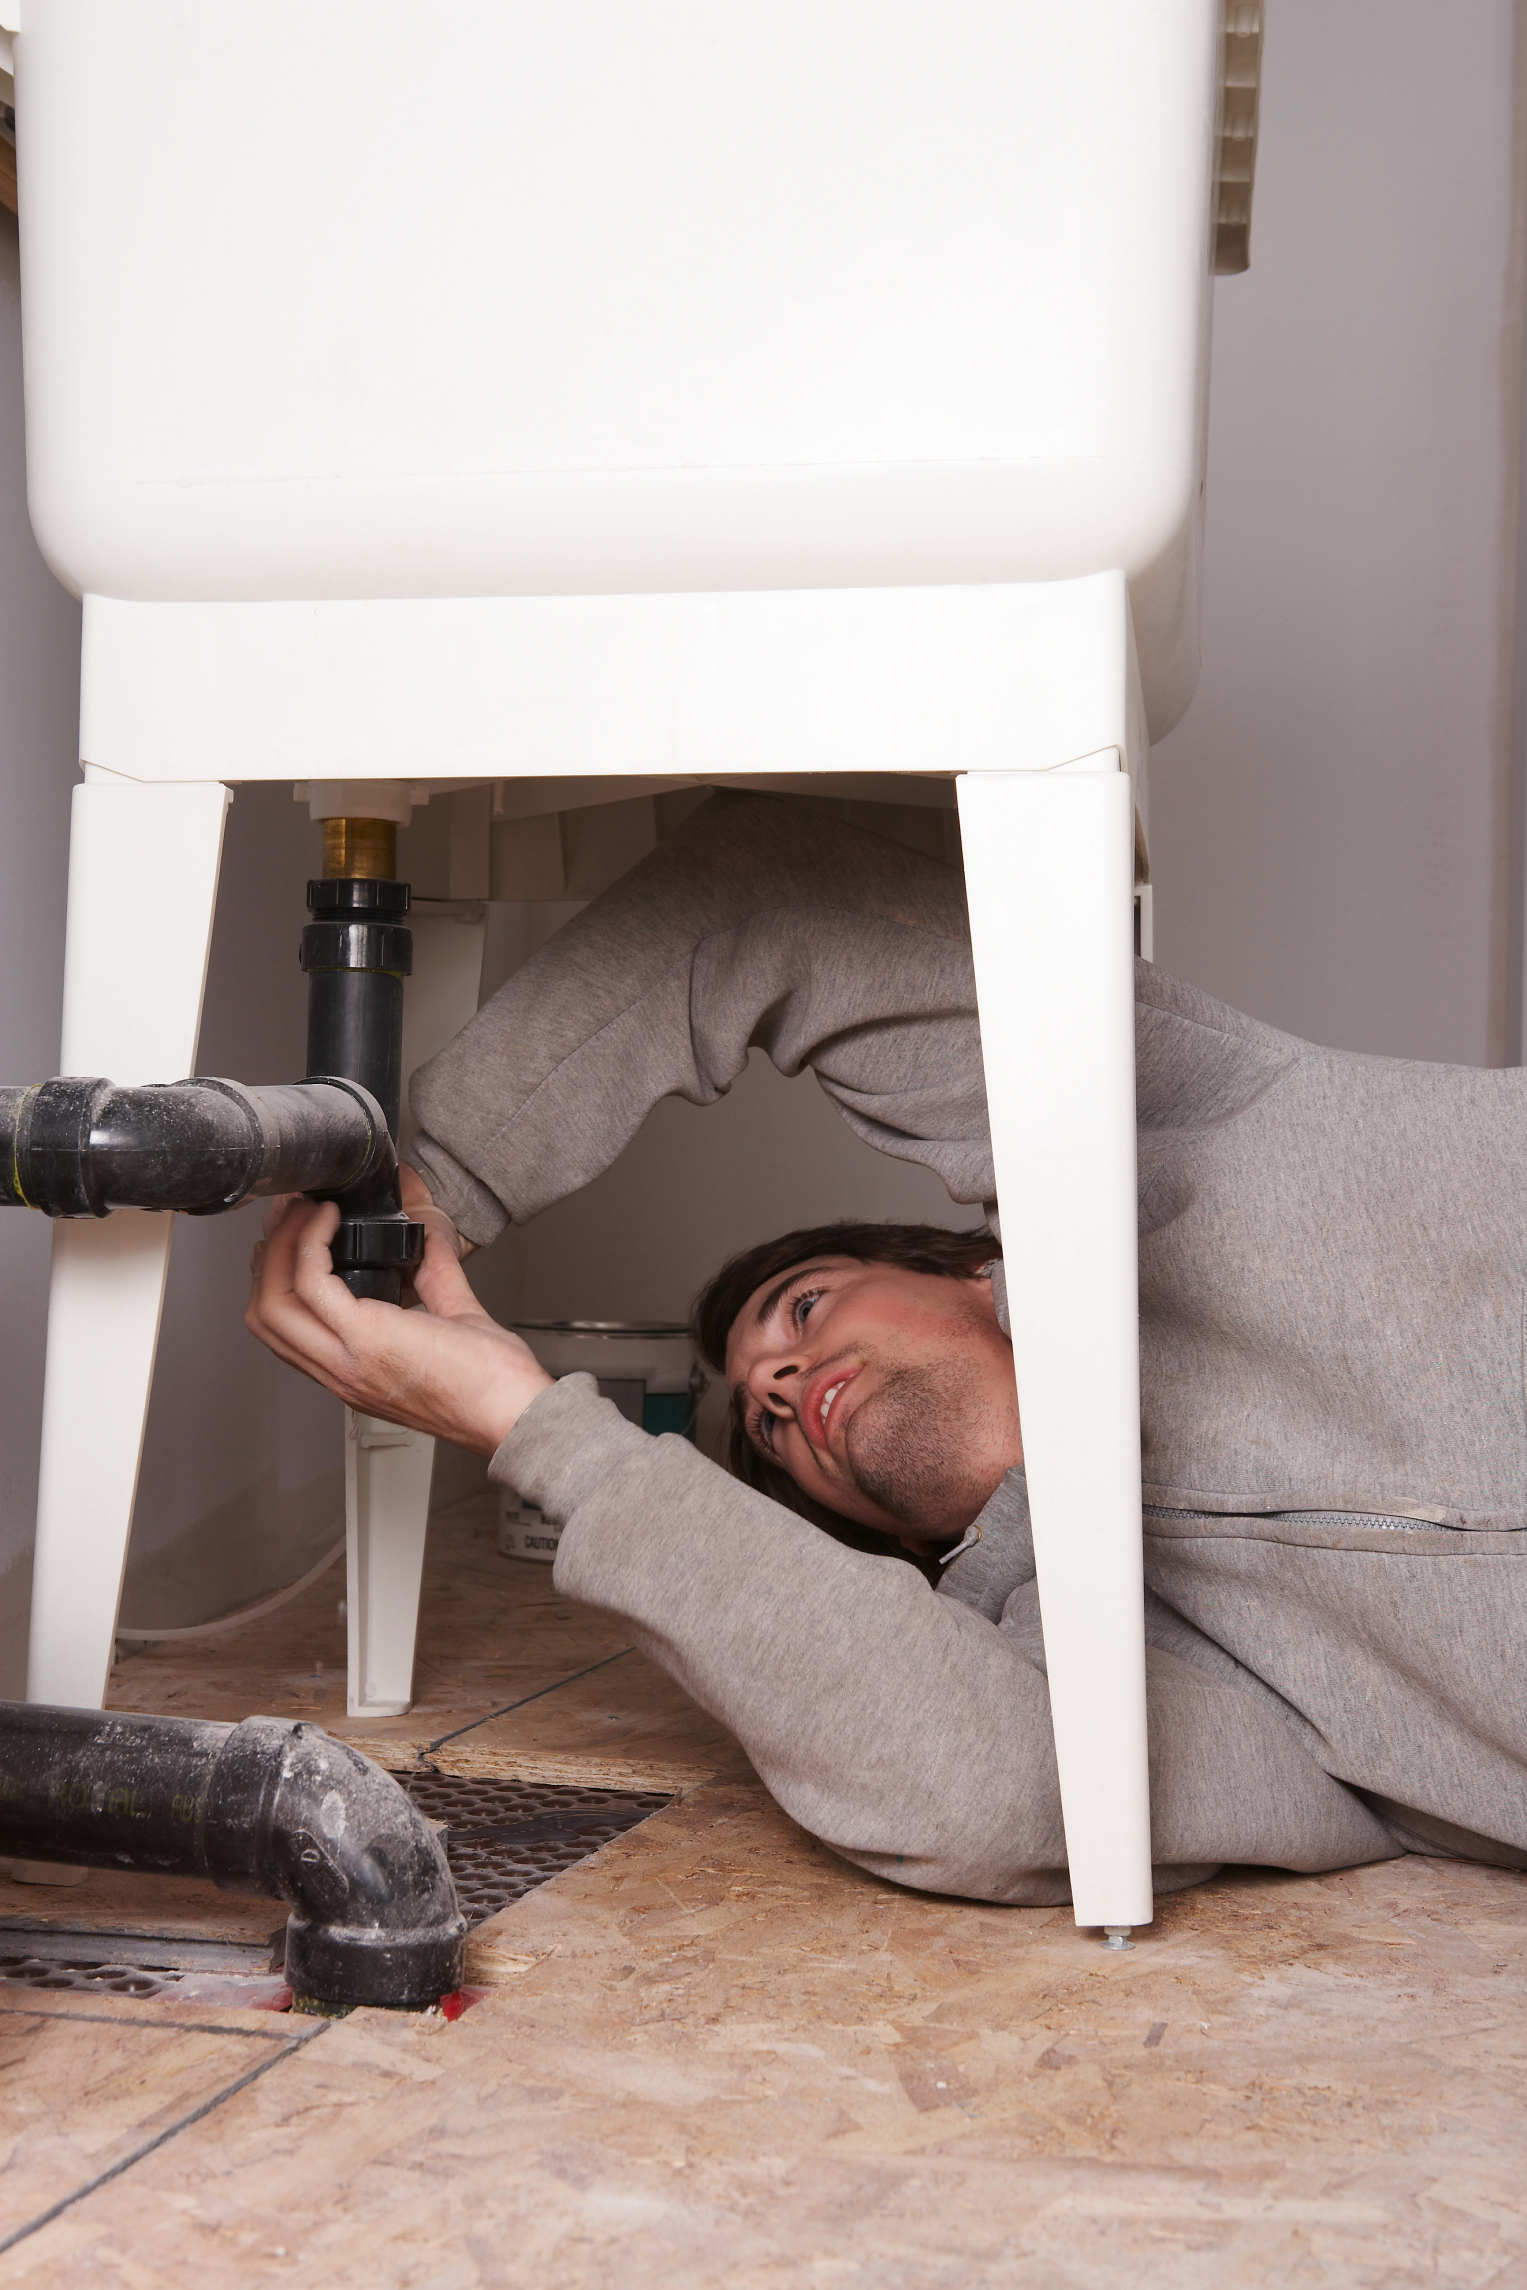 how to become a plumber apprentice in ottawa